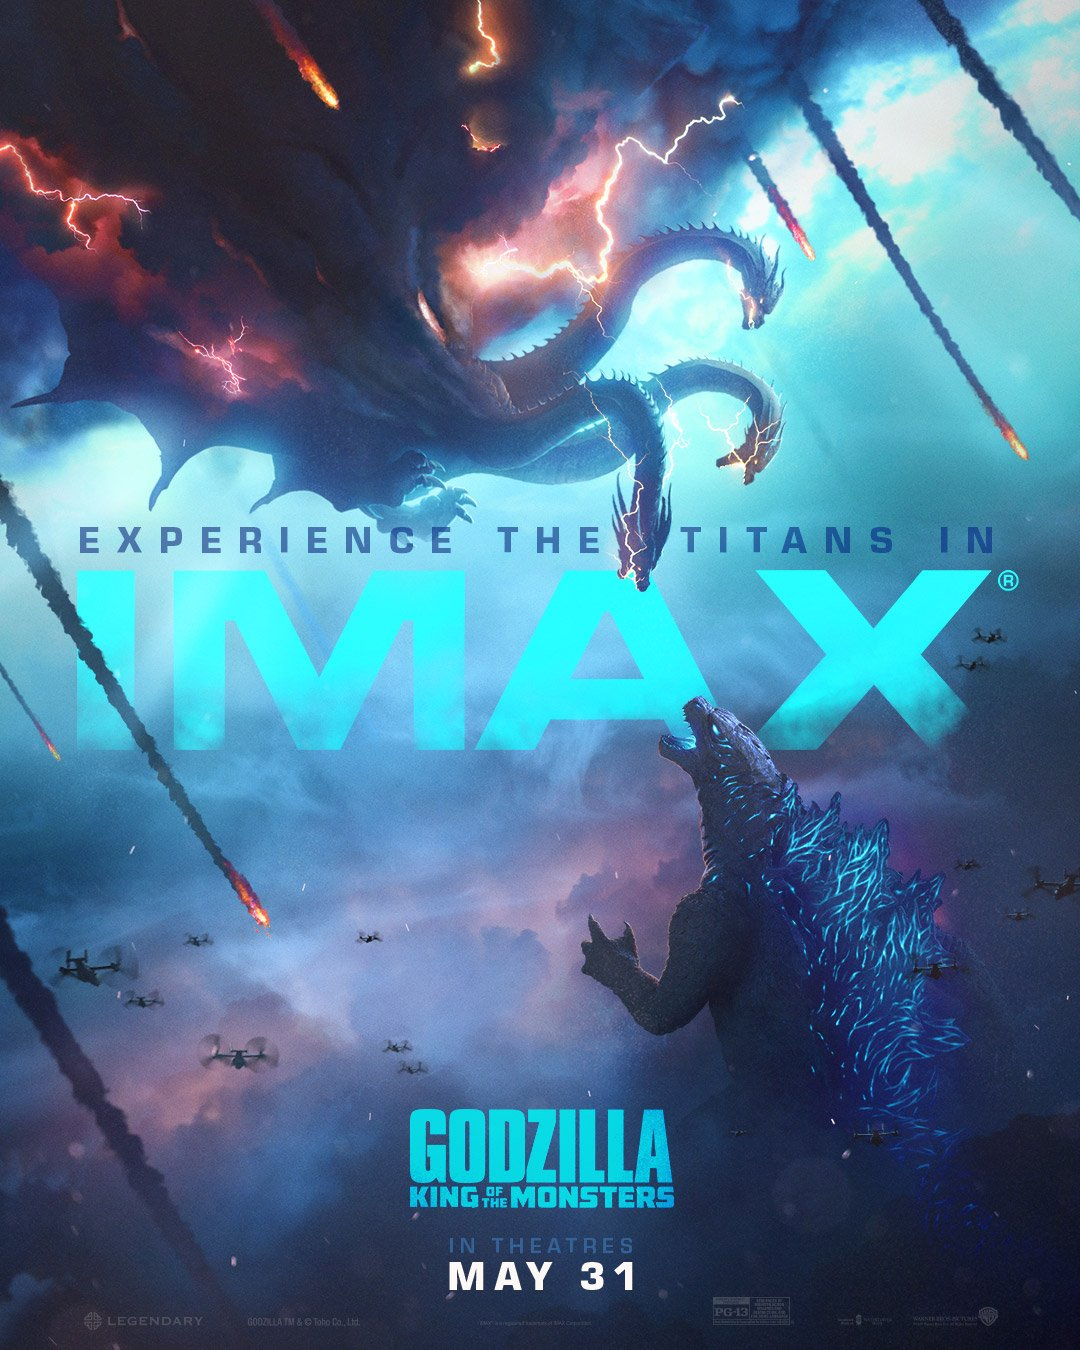 Godzilla King of the Monsters IMAX Poster Artwork